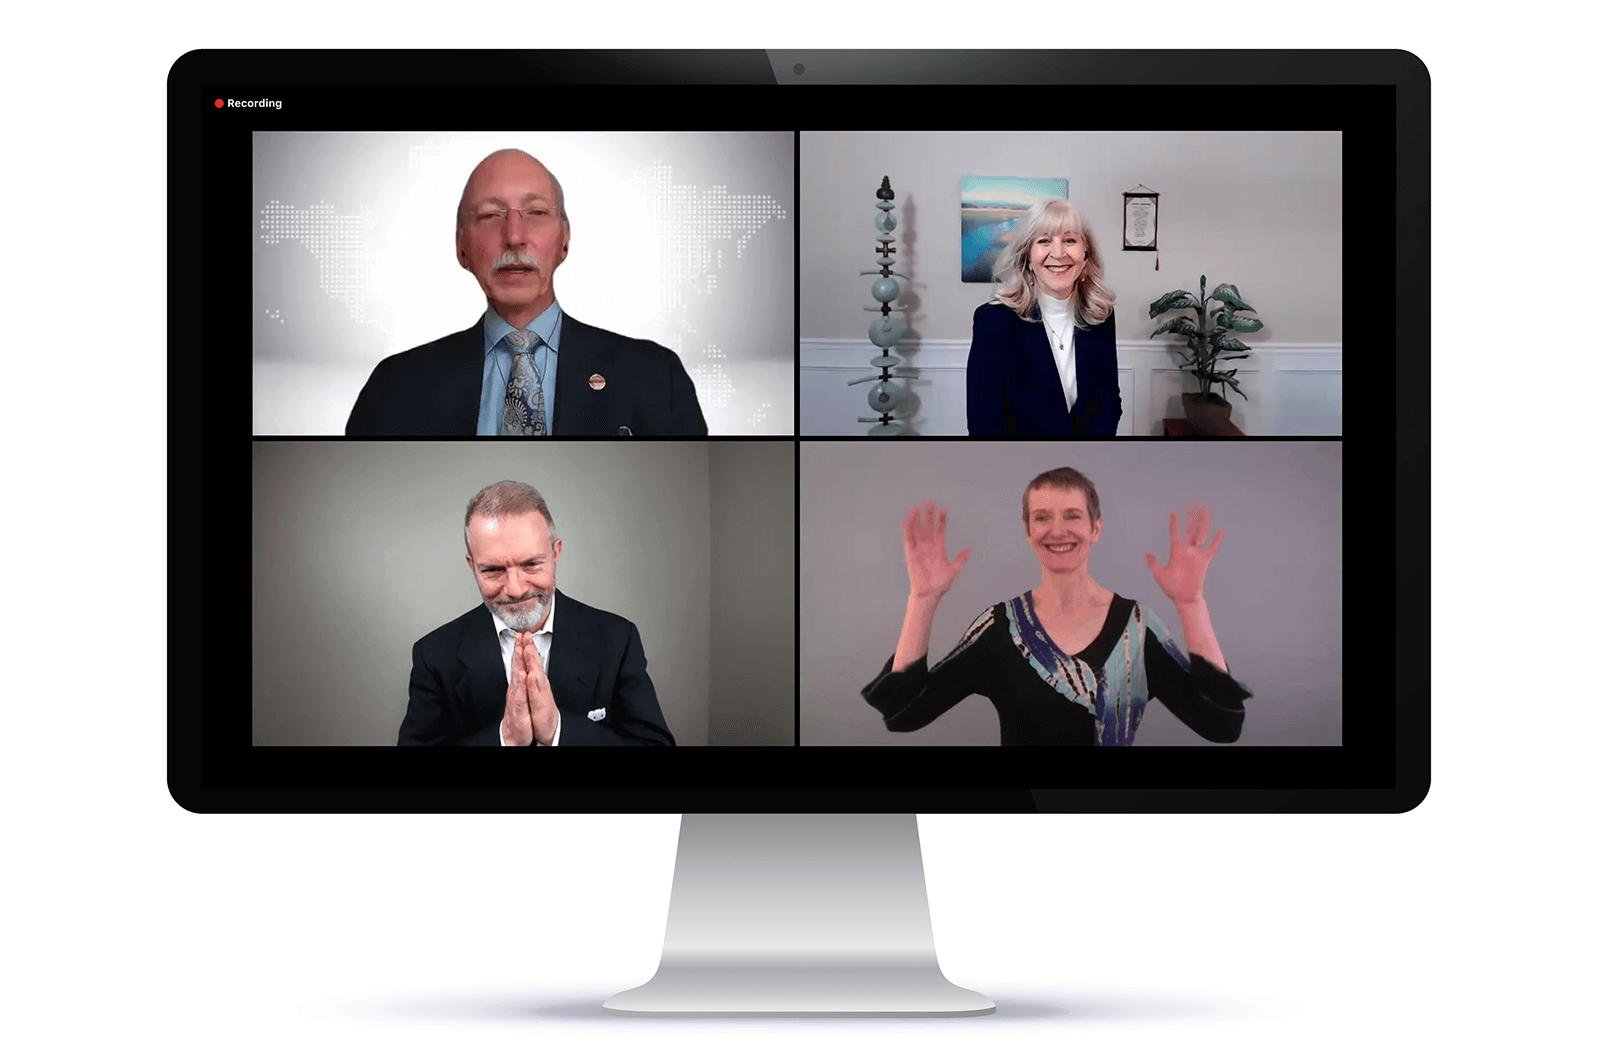 Richard E. Peck and the three winners of the 2020 Toastmasters World Championship smiling on Zoom screen